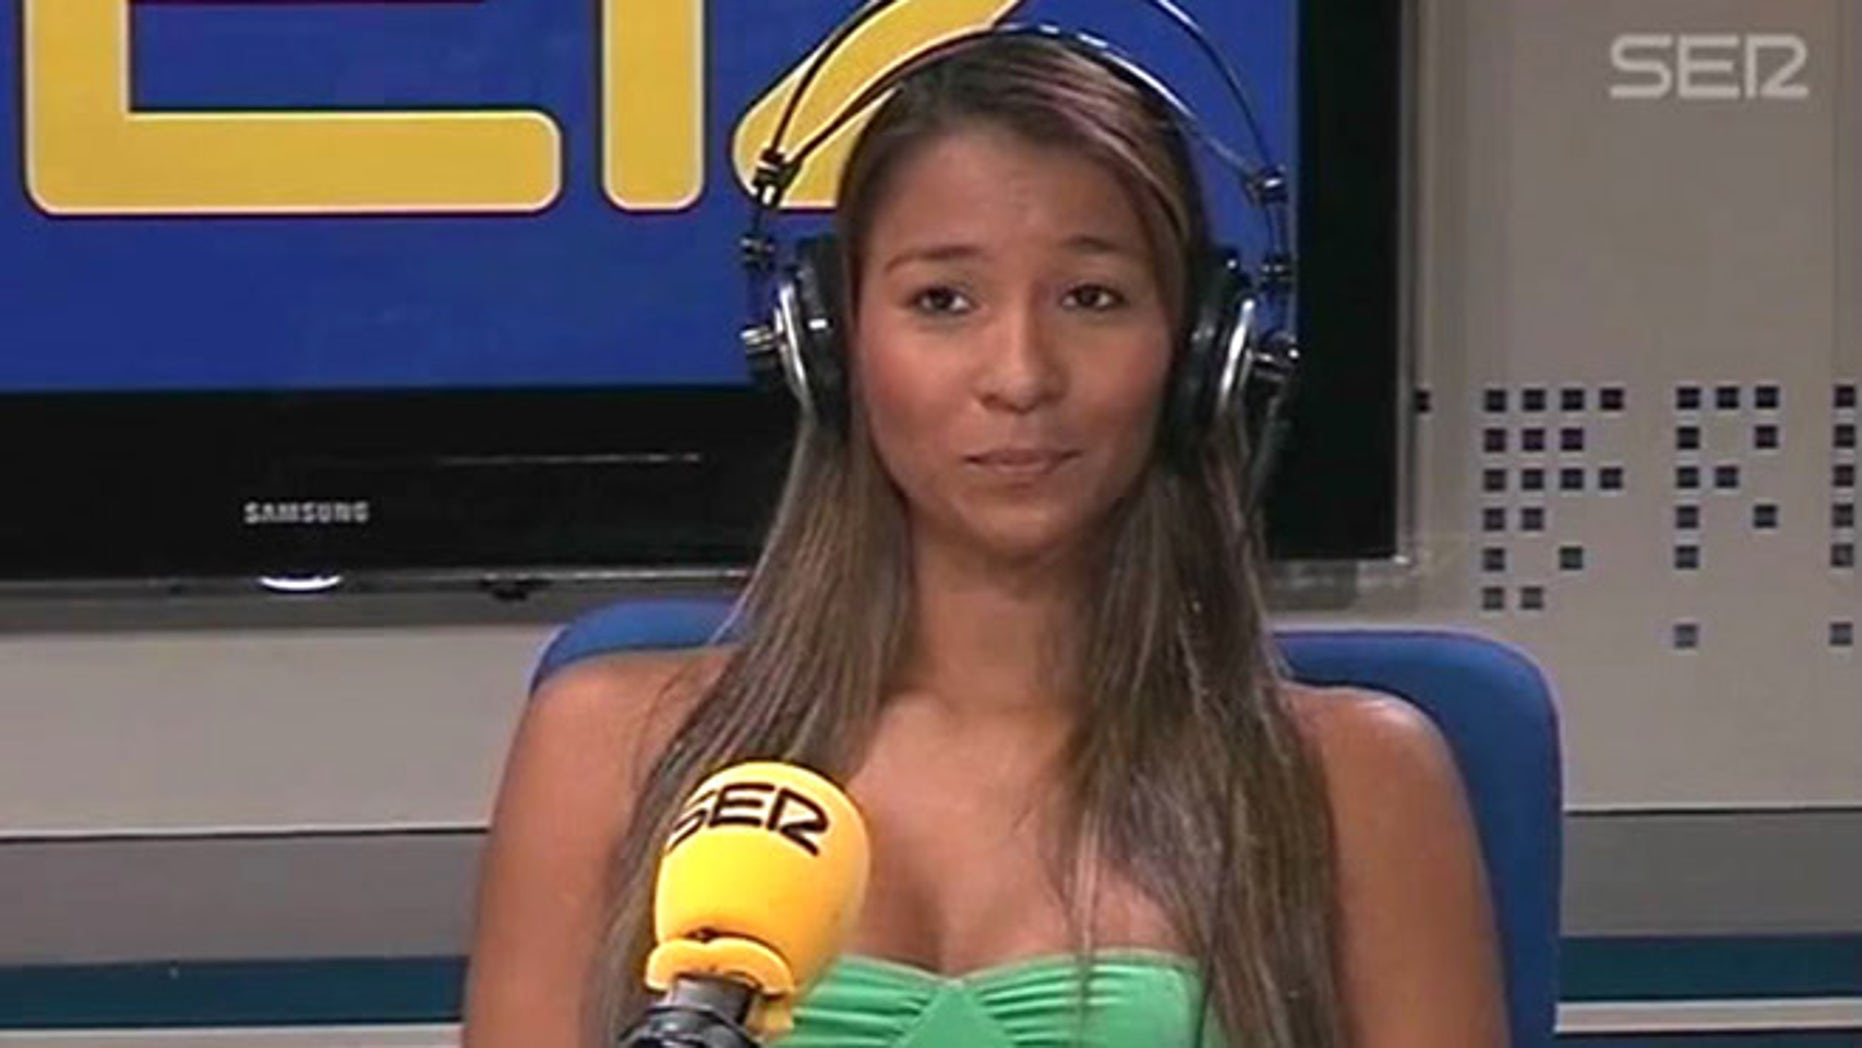 May 4, 2012: A frame grab taken from the Spanish radio station Cadena SER website shows Dania Londono Suarez during an interview at an undisclosed location.